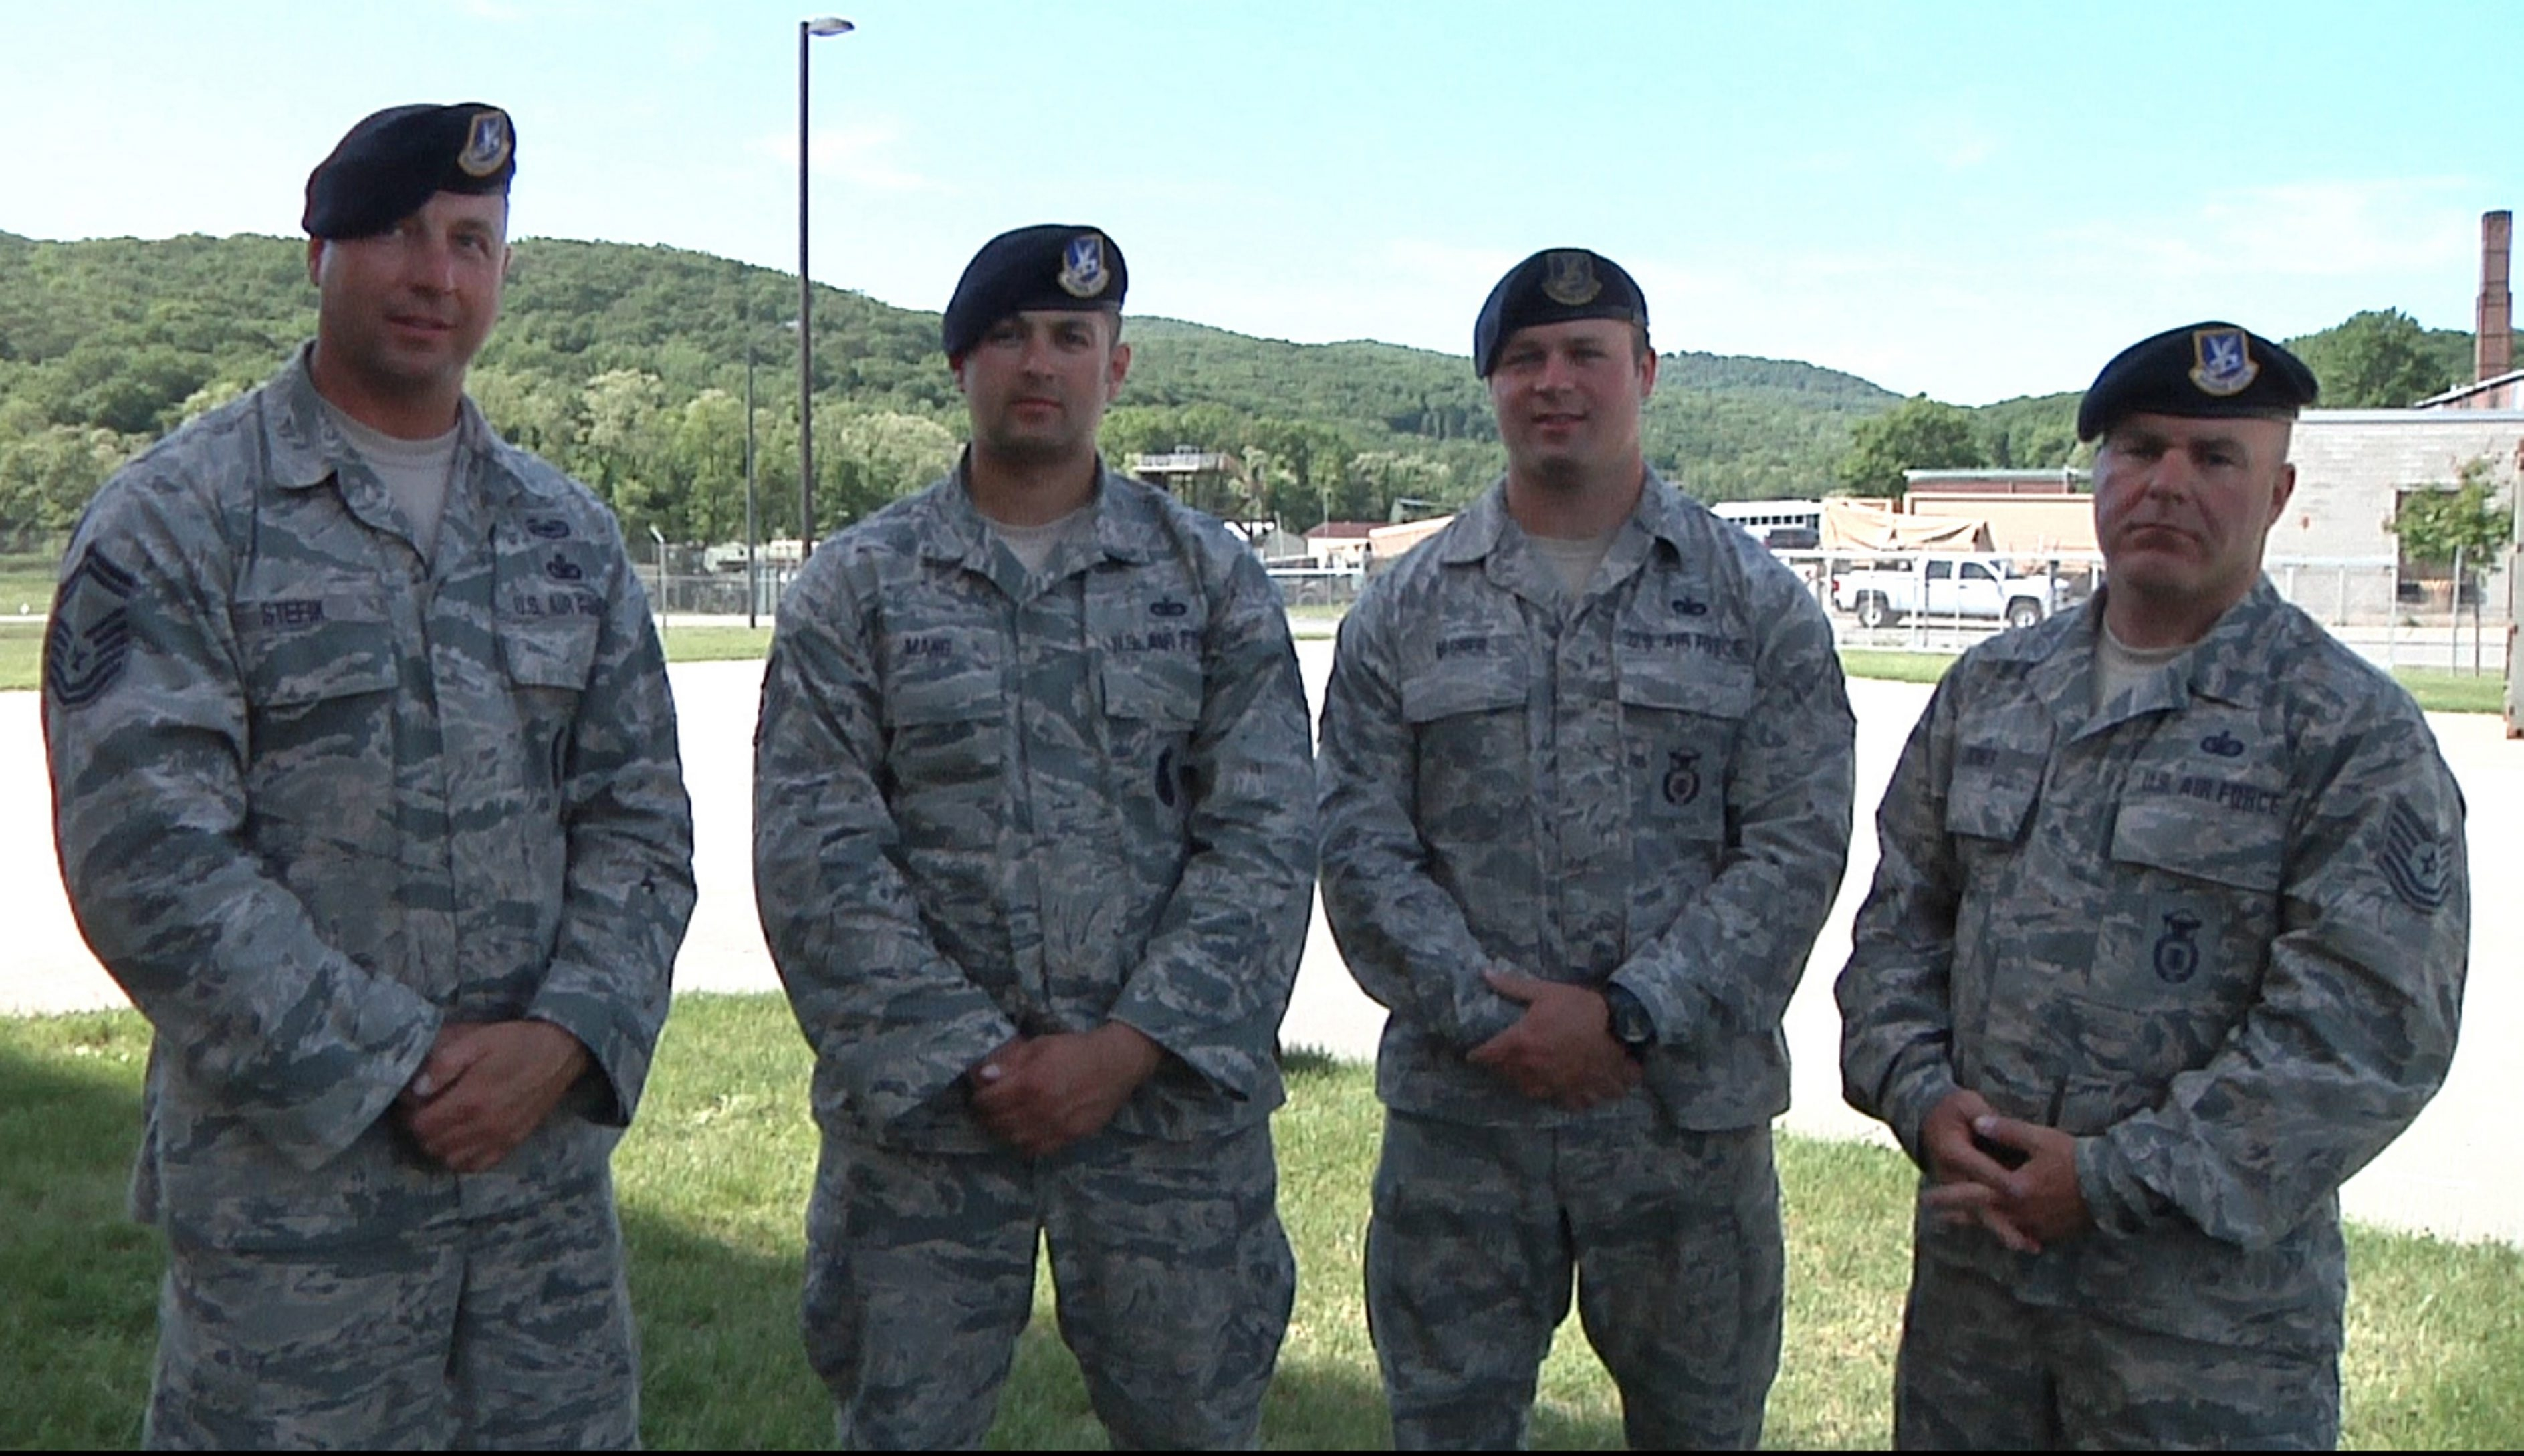 Winners of the annual New York National Guard shooting match from the 107th Airlift Wing are, from left, Senior Master Sgt. Edward Stefik, Sgt. Ryan Mang, Staff Sgt. Johnathen Wagner and Tech Sgt. Warren Jones.